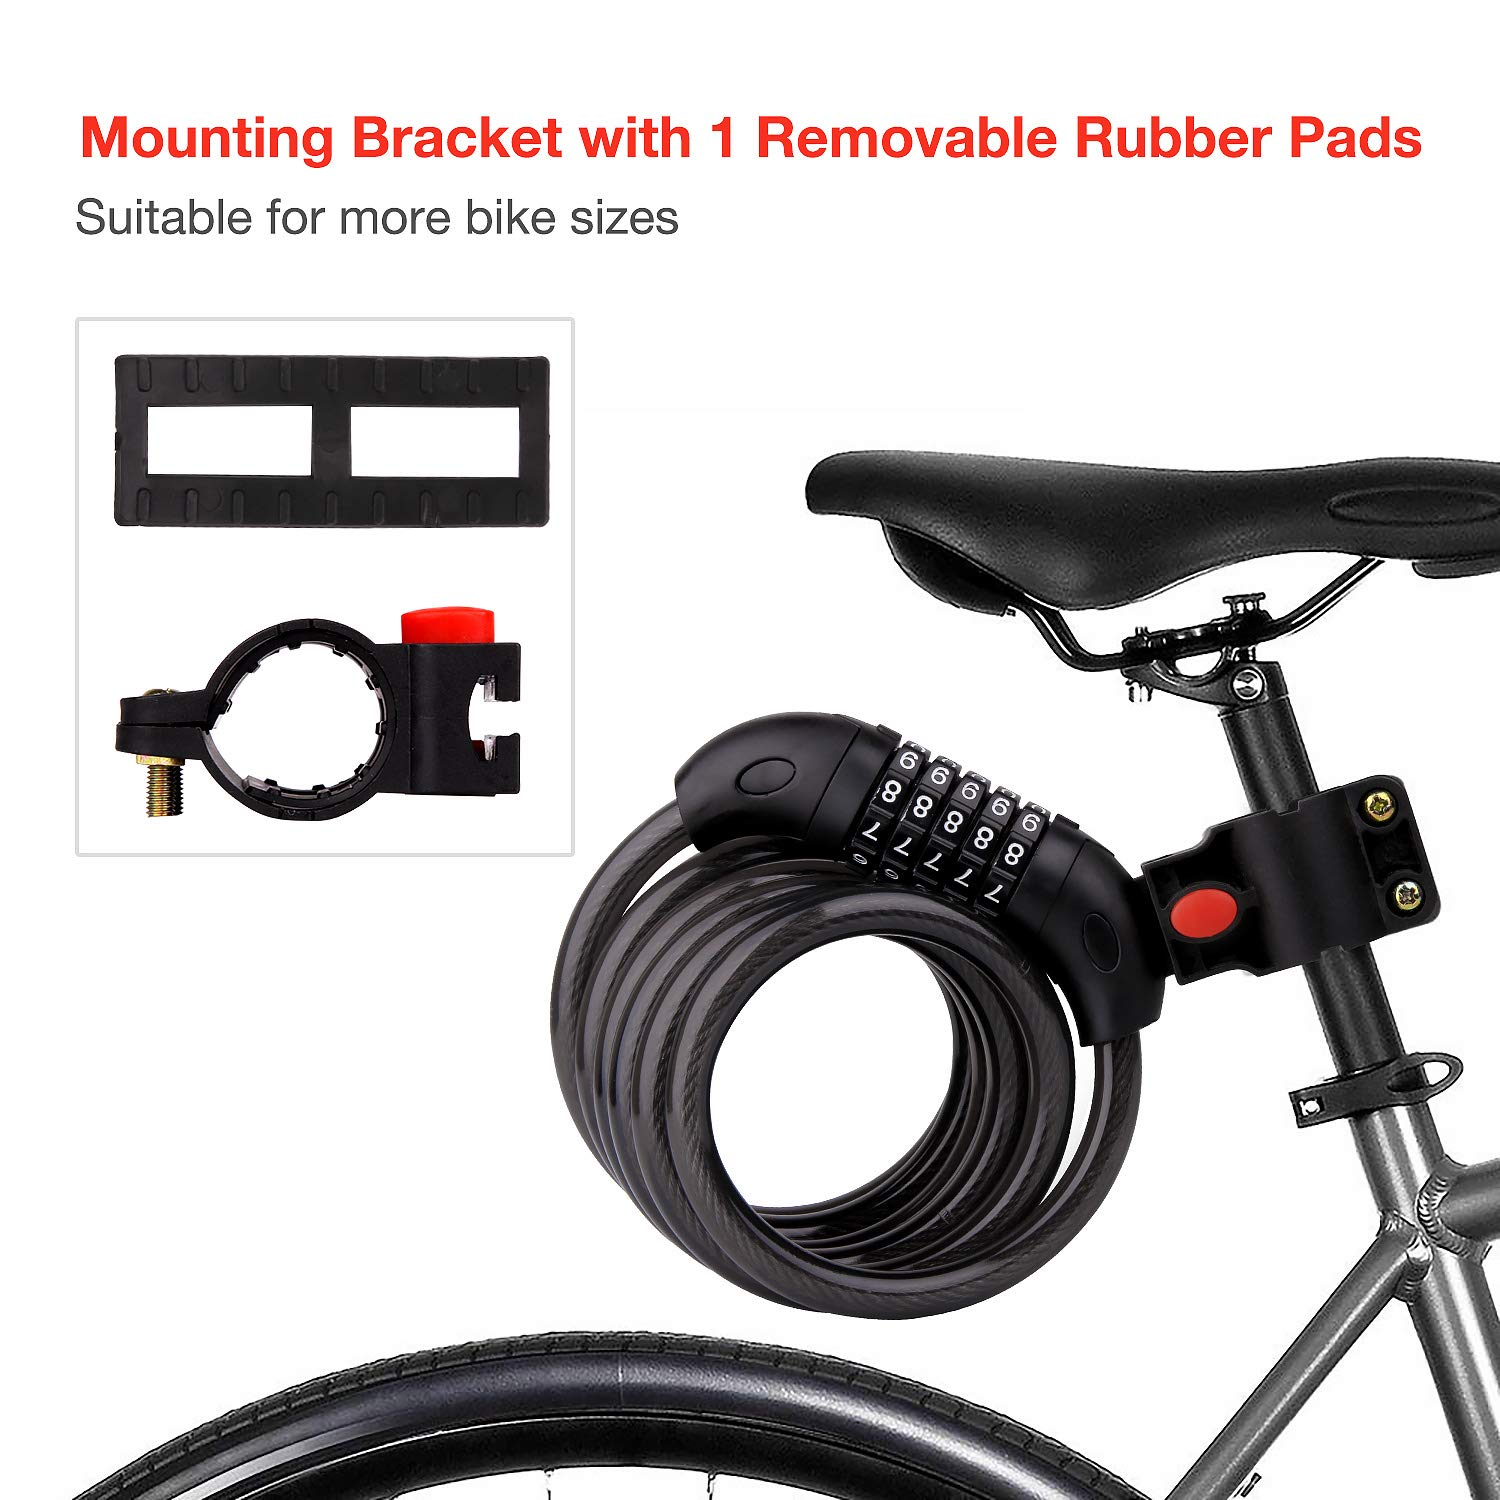 TAKEBEST Bike Lock 12mm Heavy Duty Portable Bicycle Disc Lock, Mountain Bike Locks, Mini Locks, Bicycle Locks That can be Connected Between Locks and Locks, Suitable for All Types of Bicycles.